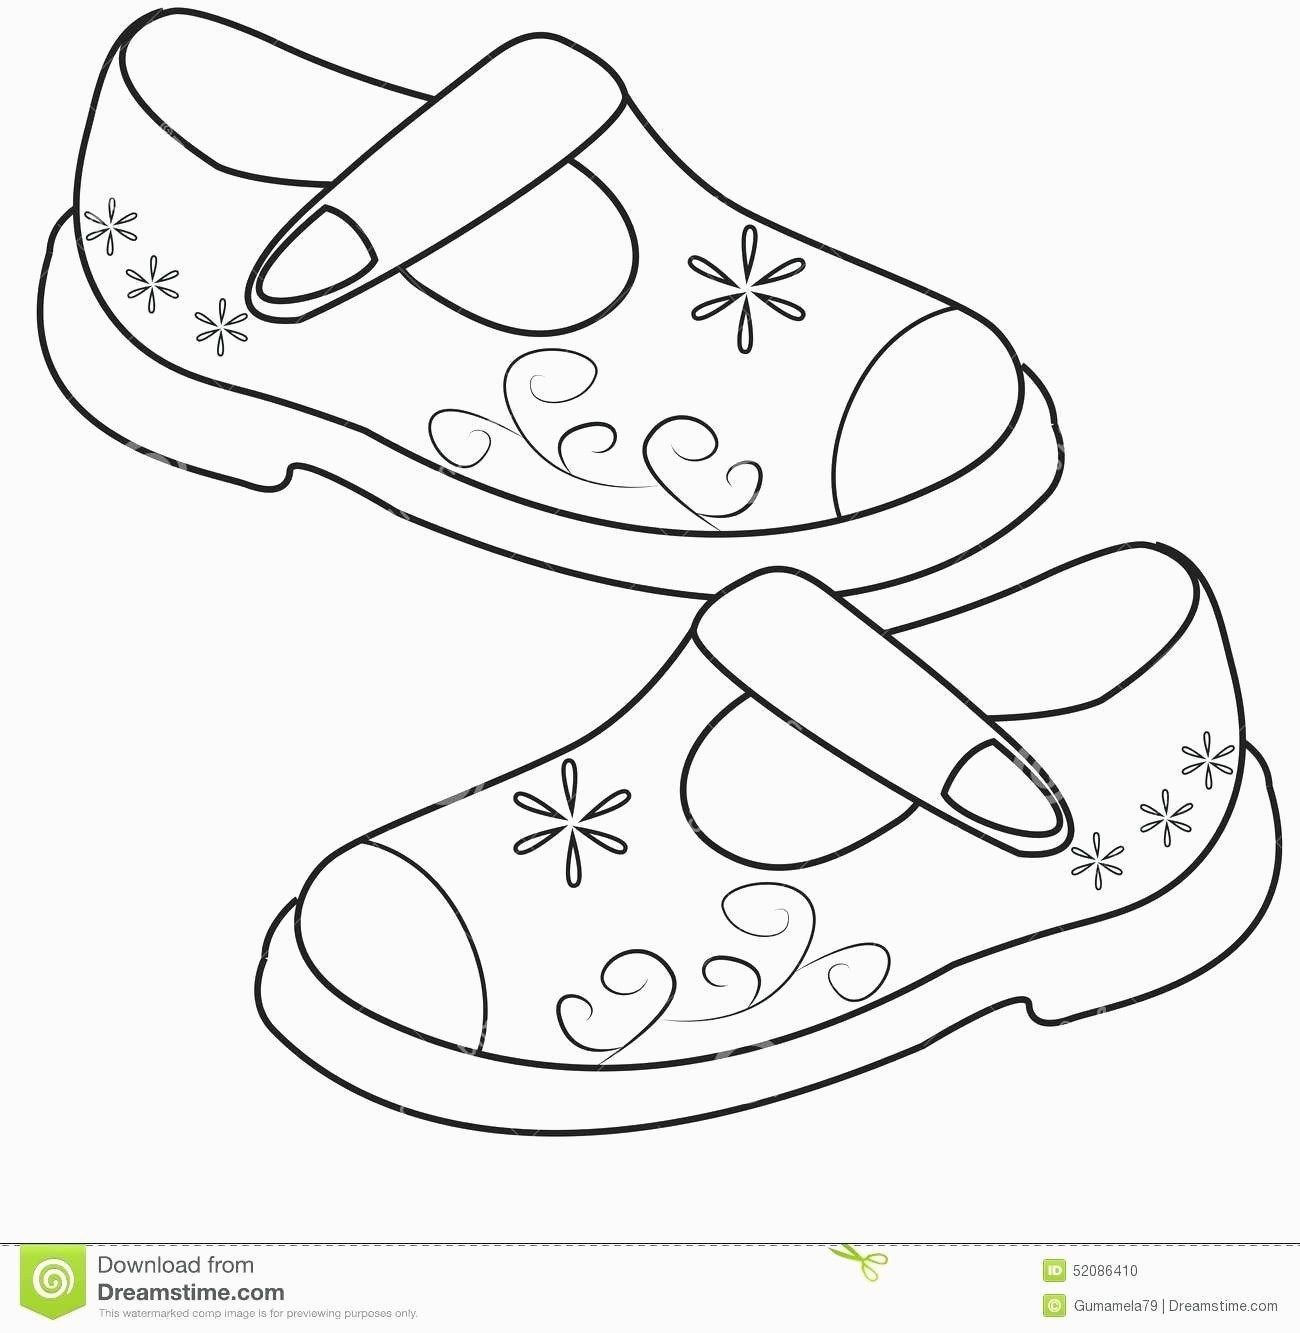 22 Great Photo Of Shoe Coloring Page Davemelillo Com Coloring Books Coloring Pages Shoe Template